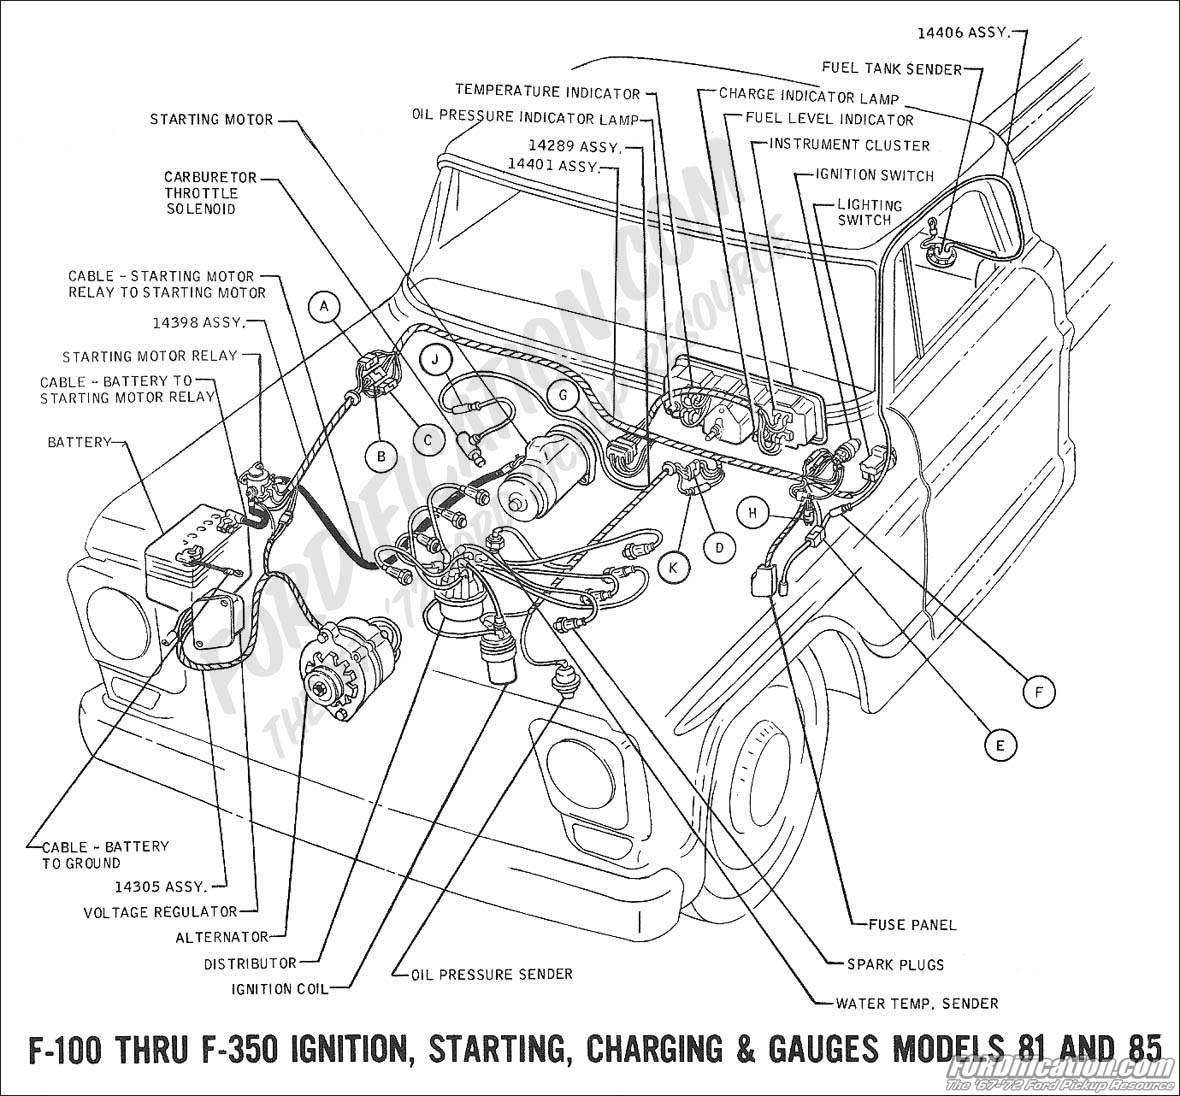 1971 Chevrolet El Camino Wiring Diagram as well 1961 Corvette Parts Diagram further Painless Performance Wiring Harness also 1984 Buick Riviera Wiring Diagram further 1967 Buick Skylark Engine Diagram. on l240317